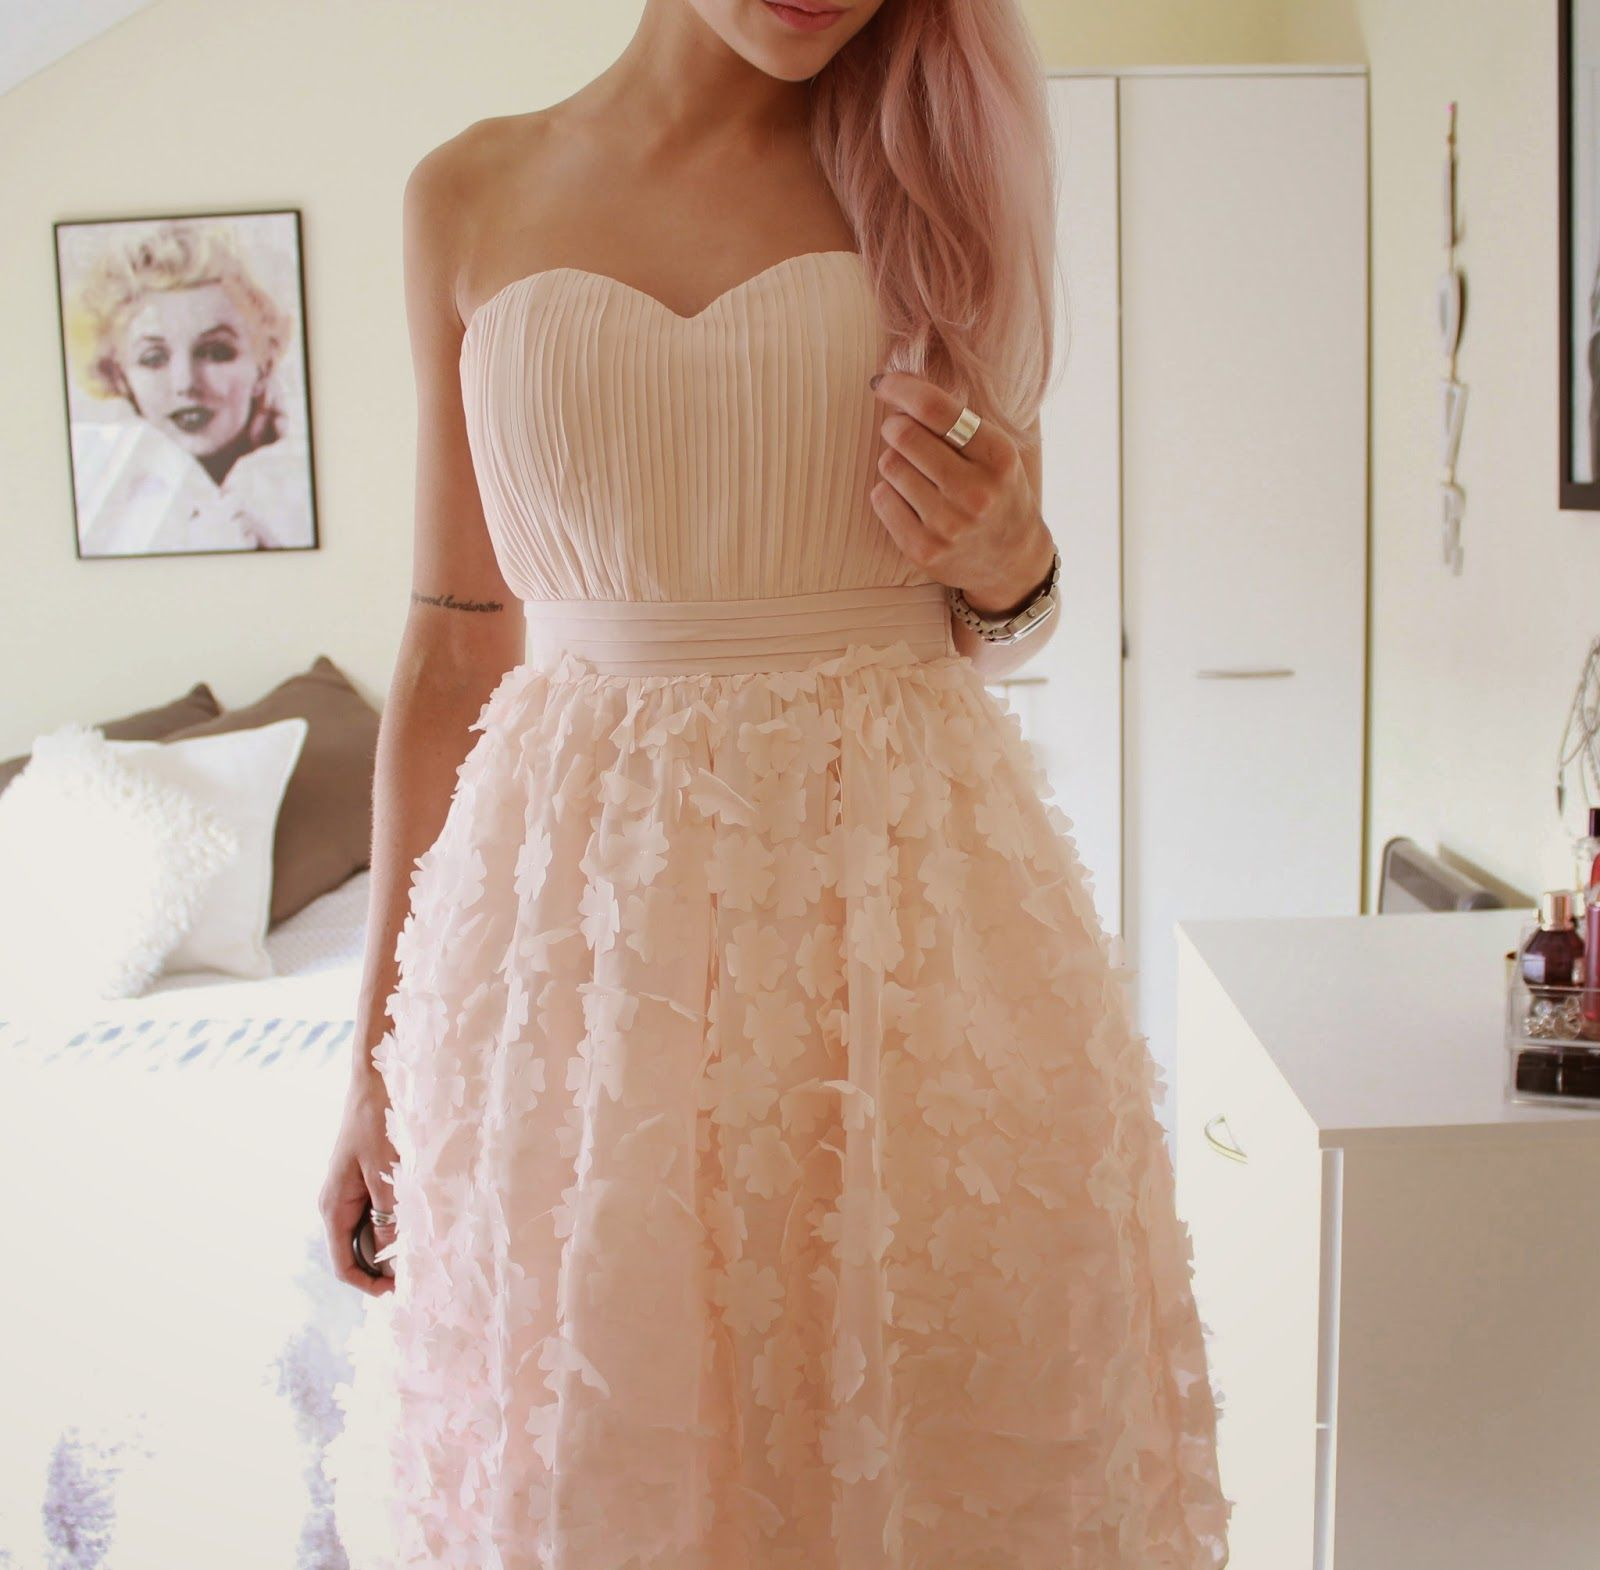 Cutest Prom Dress in the World | Cute Pink Prom Dresses Tumblr The ...